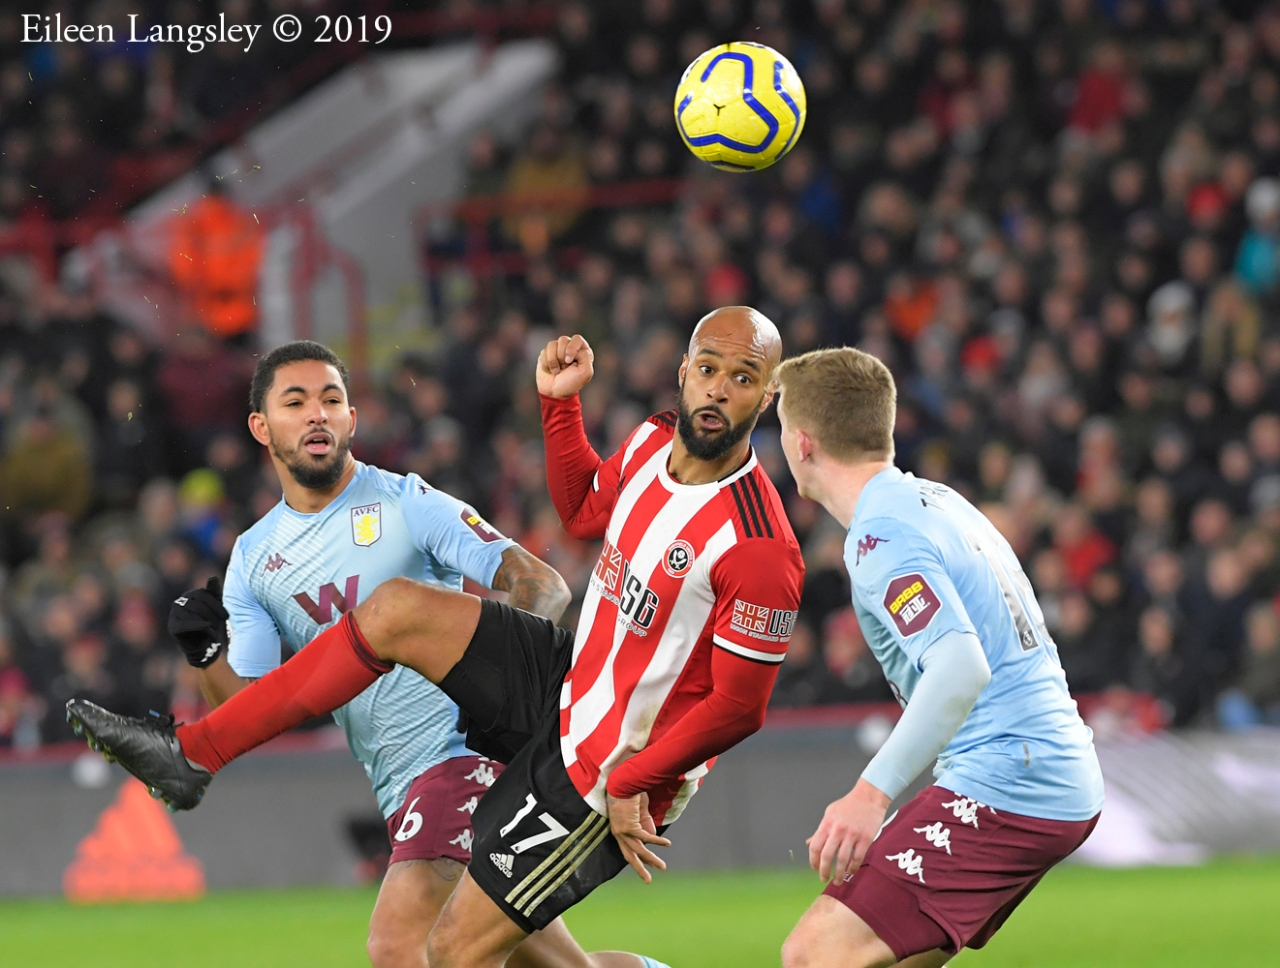 Protected: Sheffield United v Aston Villa